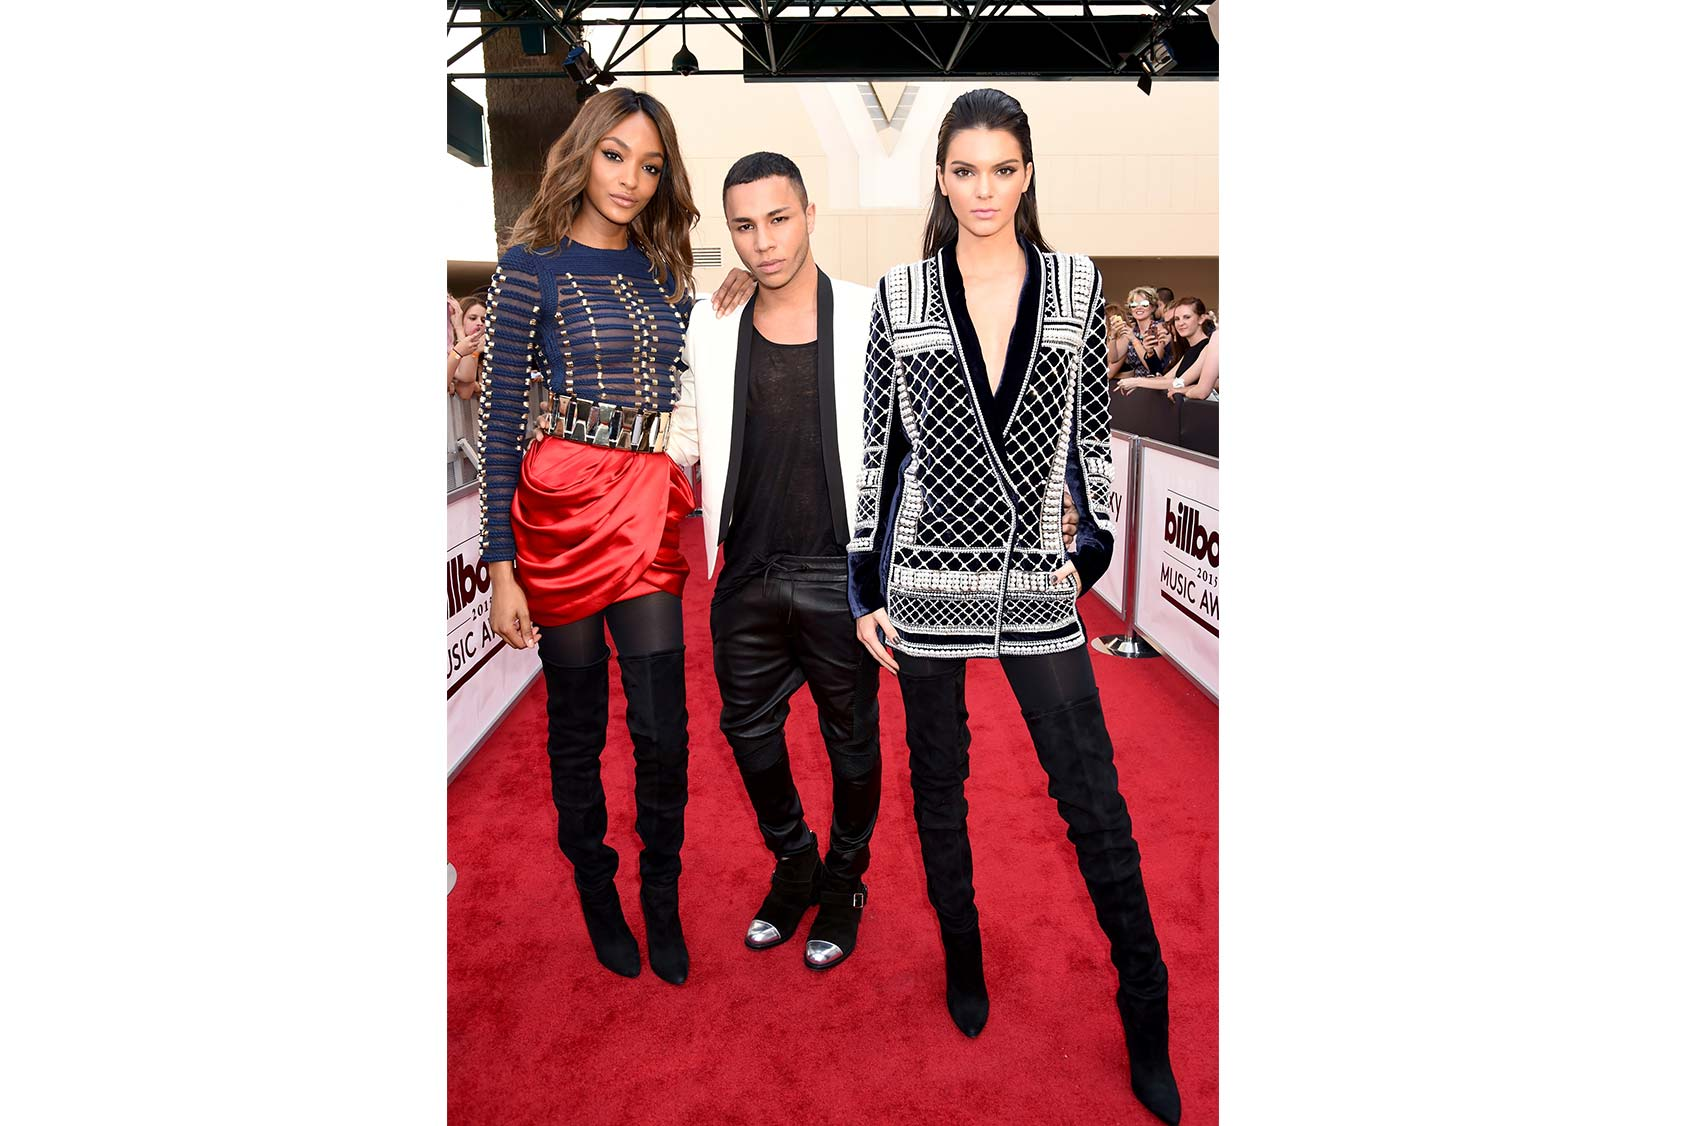 Une collection balmain pour h m en fin d 39 ann e - Ancienne collection h m ...